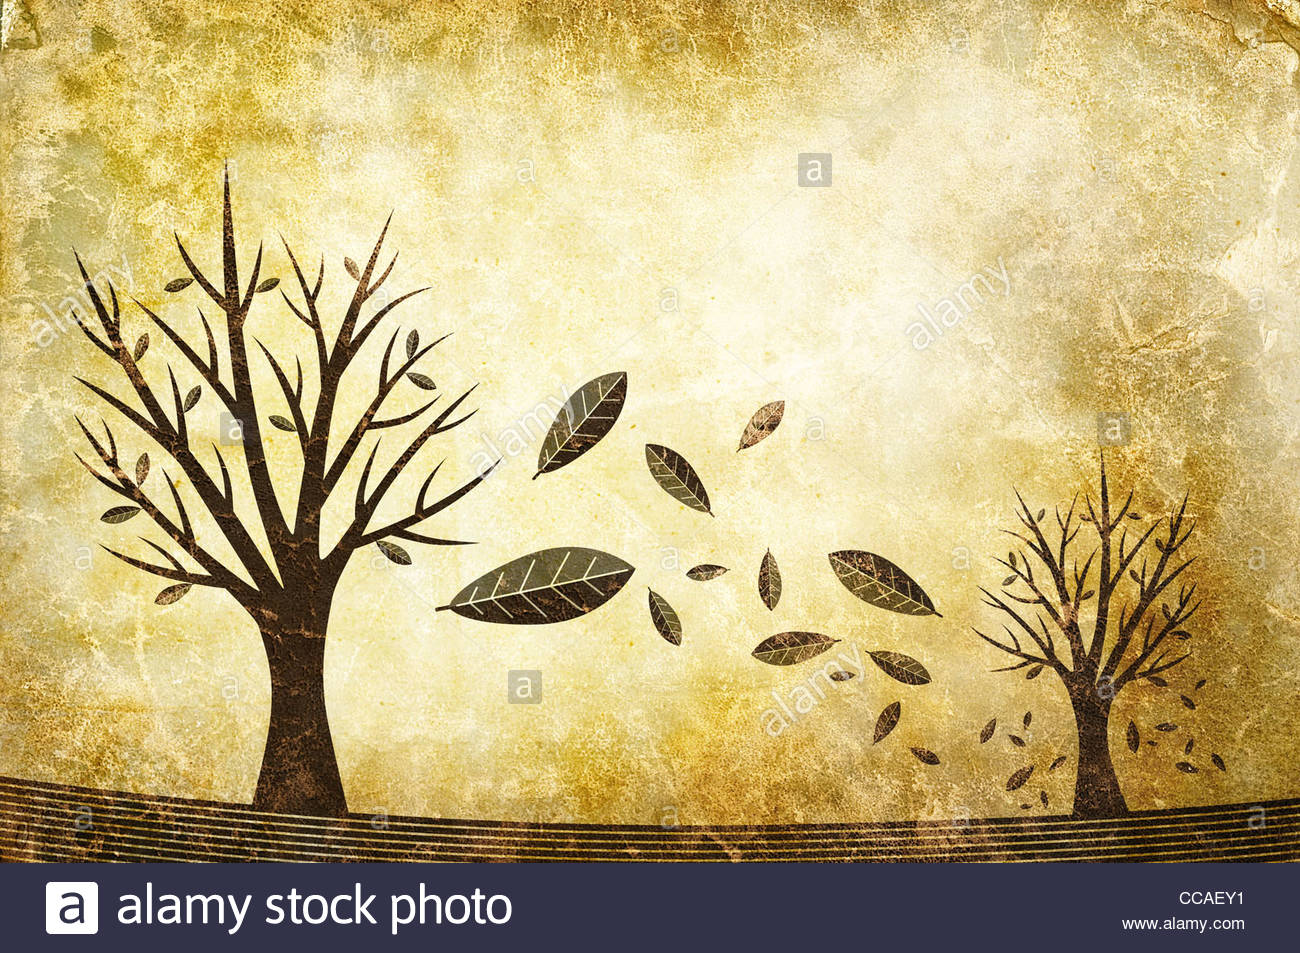 autumn leaves falling from tree illustration - Stock Image